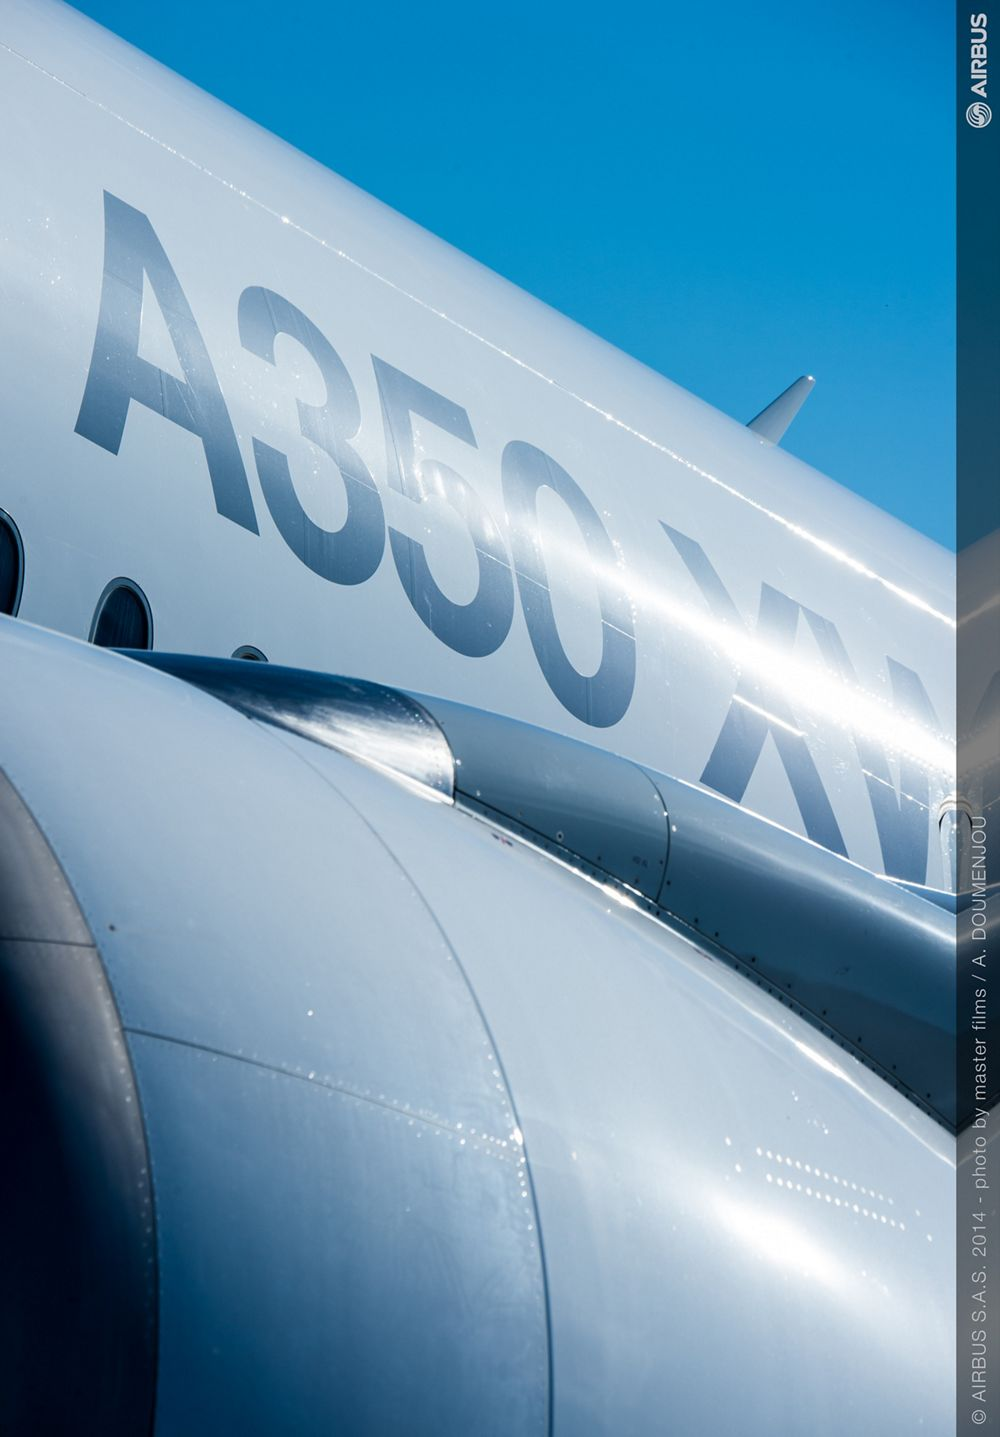 With its A350 XWB on display at the Farnborough Airshow, Airbus brings together the very latest in aerodynamics, design and advanced technologies